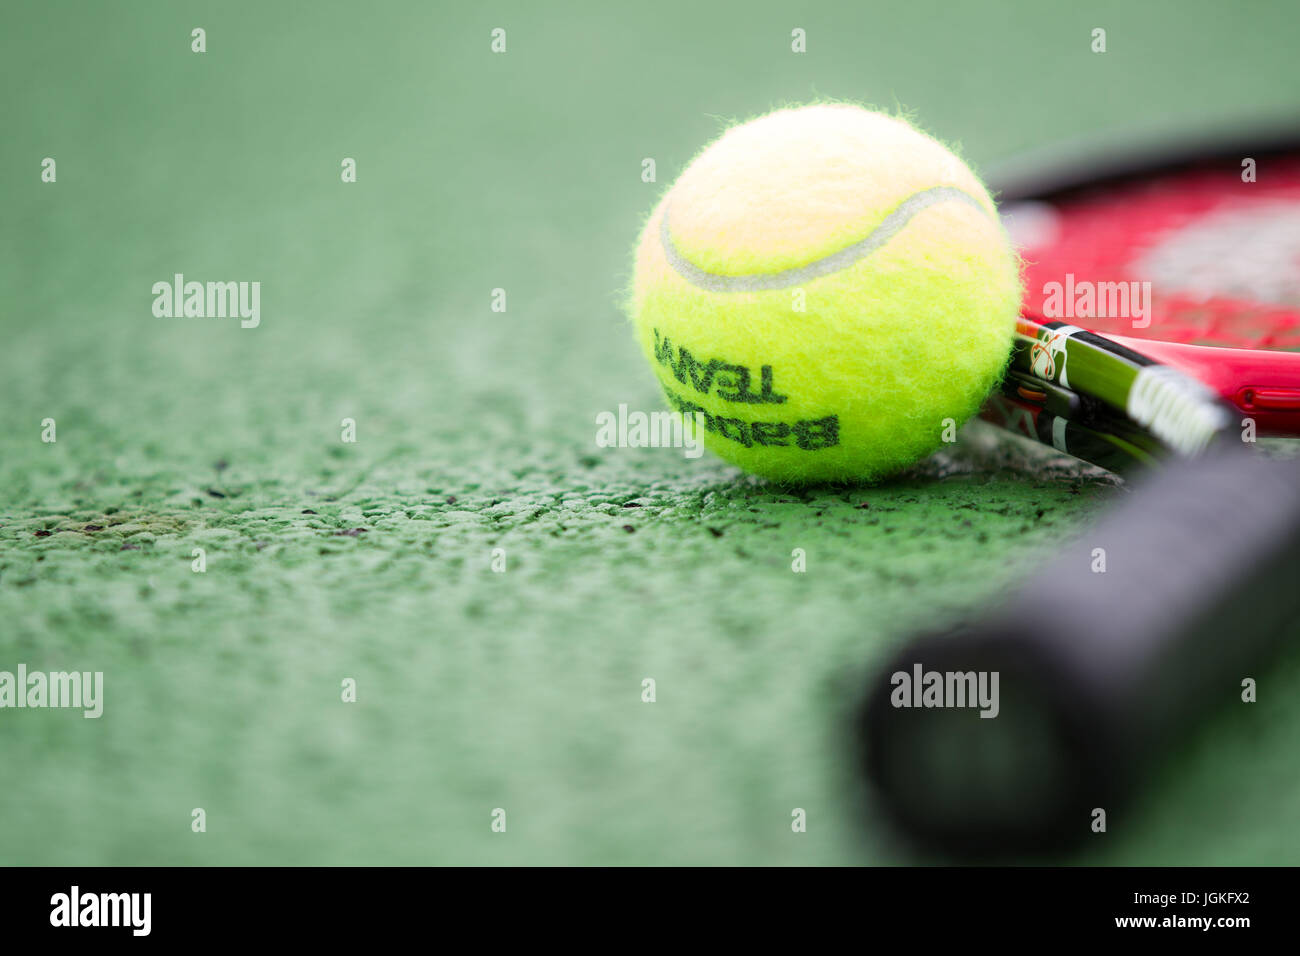 Raquette de tennis et de boules Photo Stock